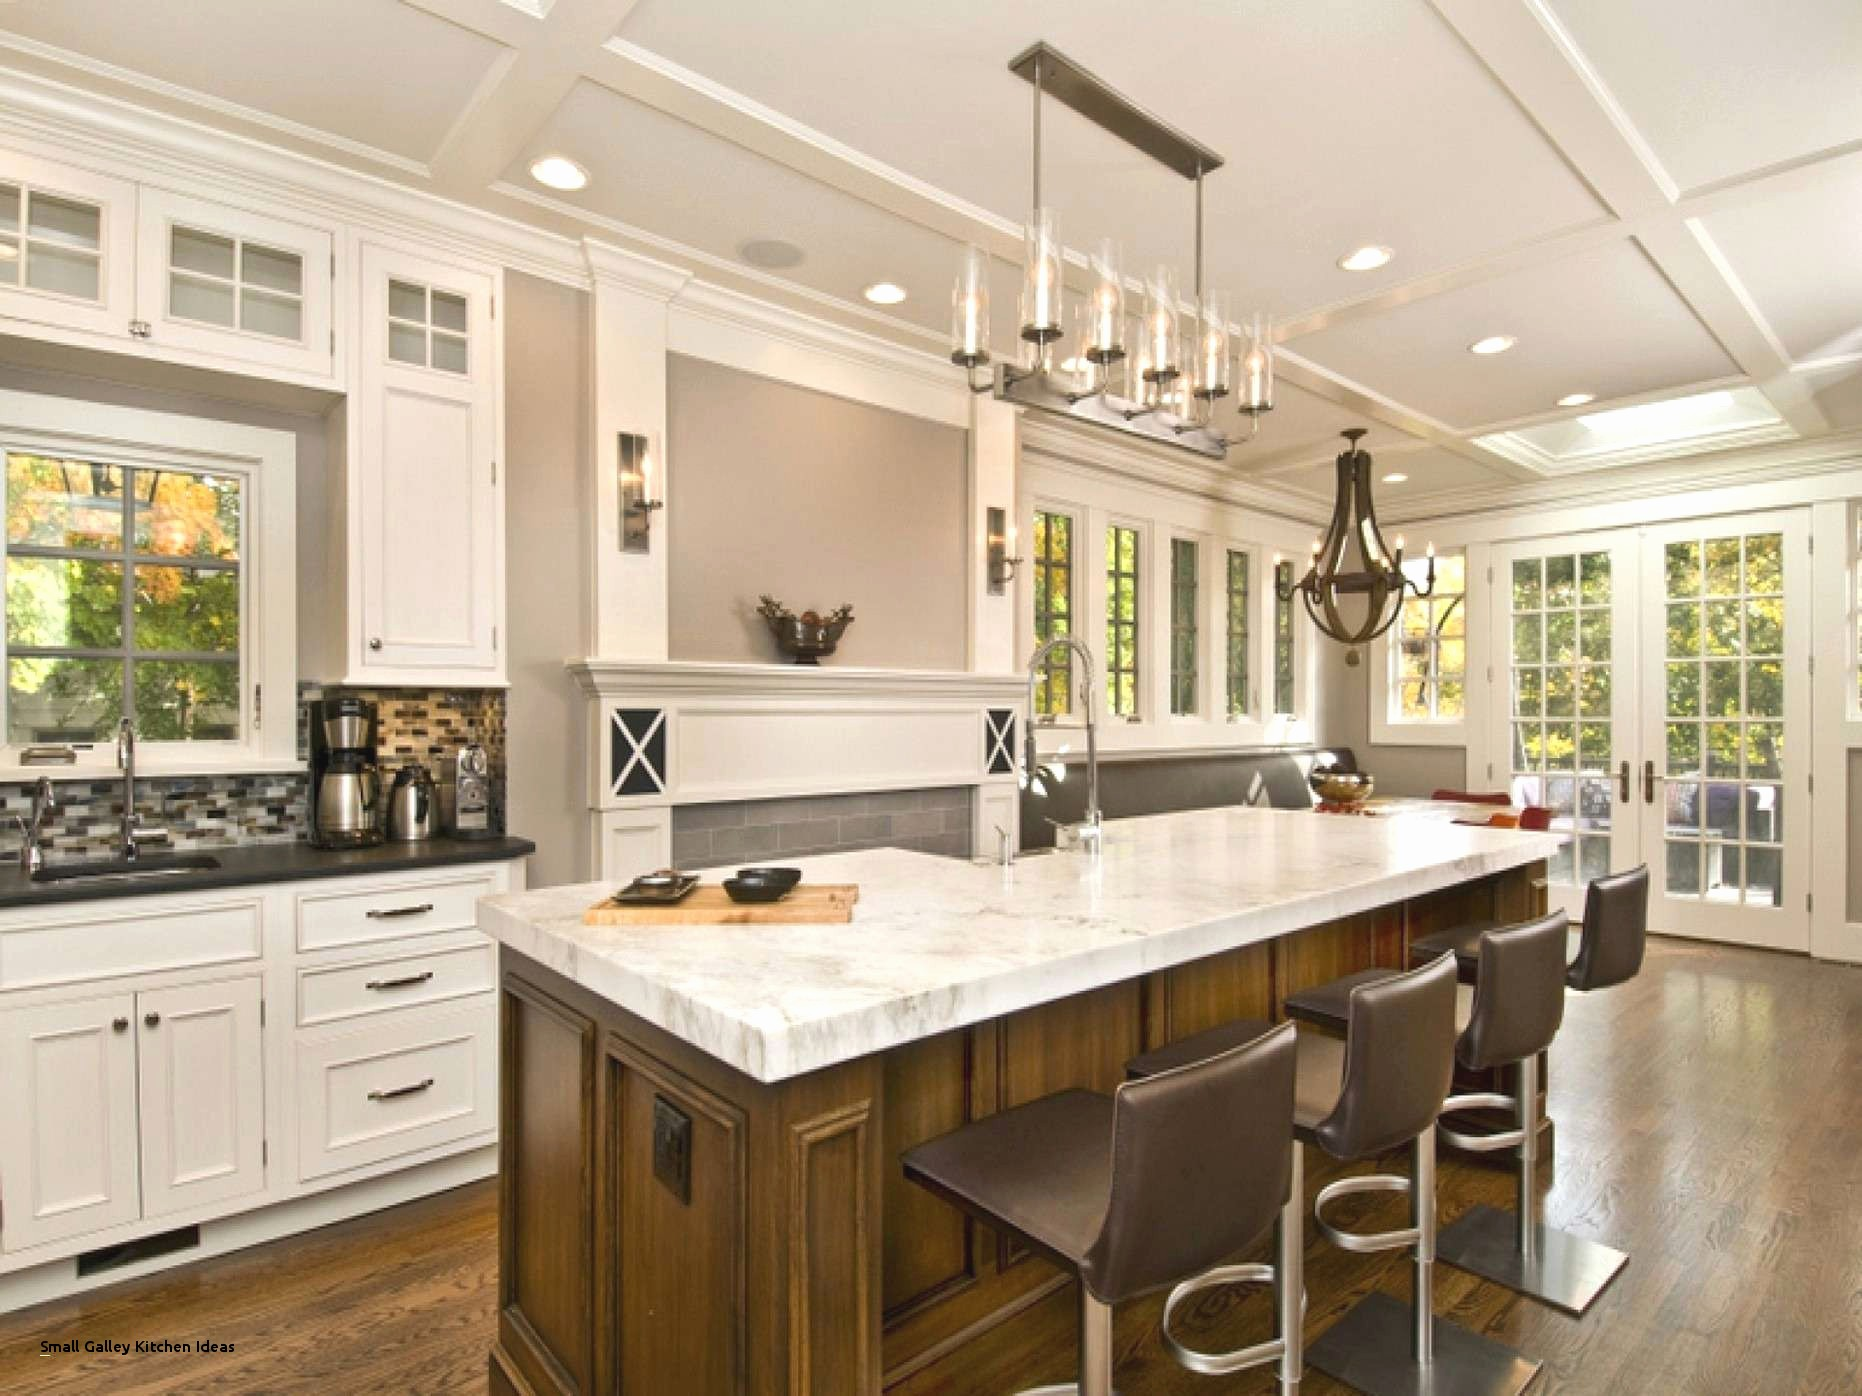 17 Artistic Small Galley Kitchen Designs Inspirational Best Small Galley Kitchen Ideas